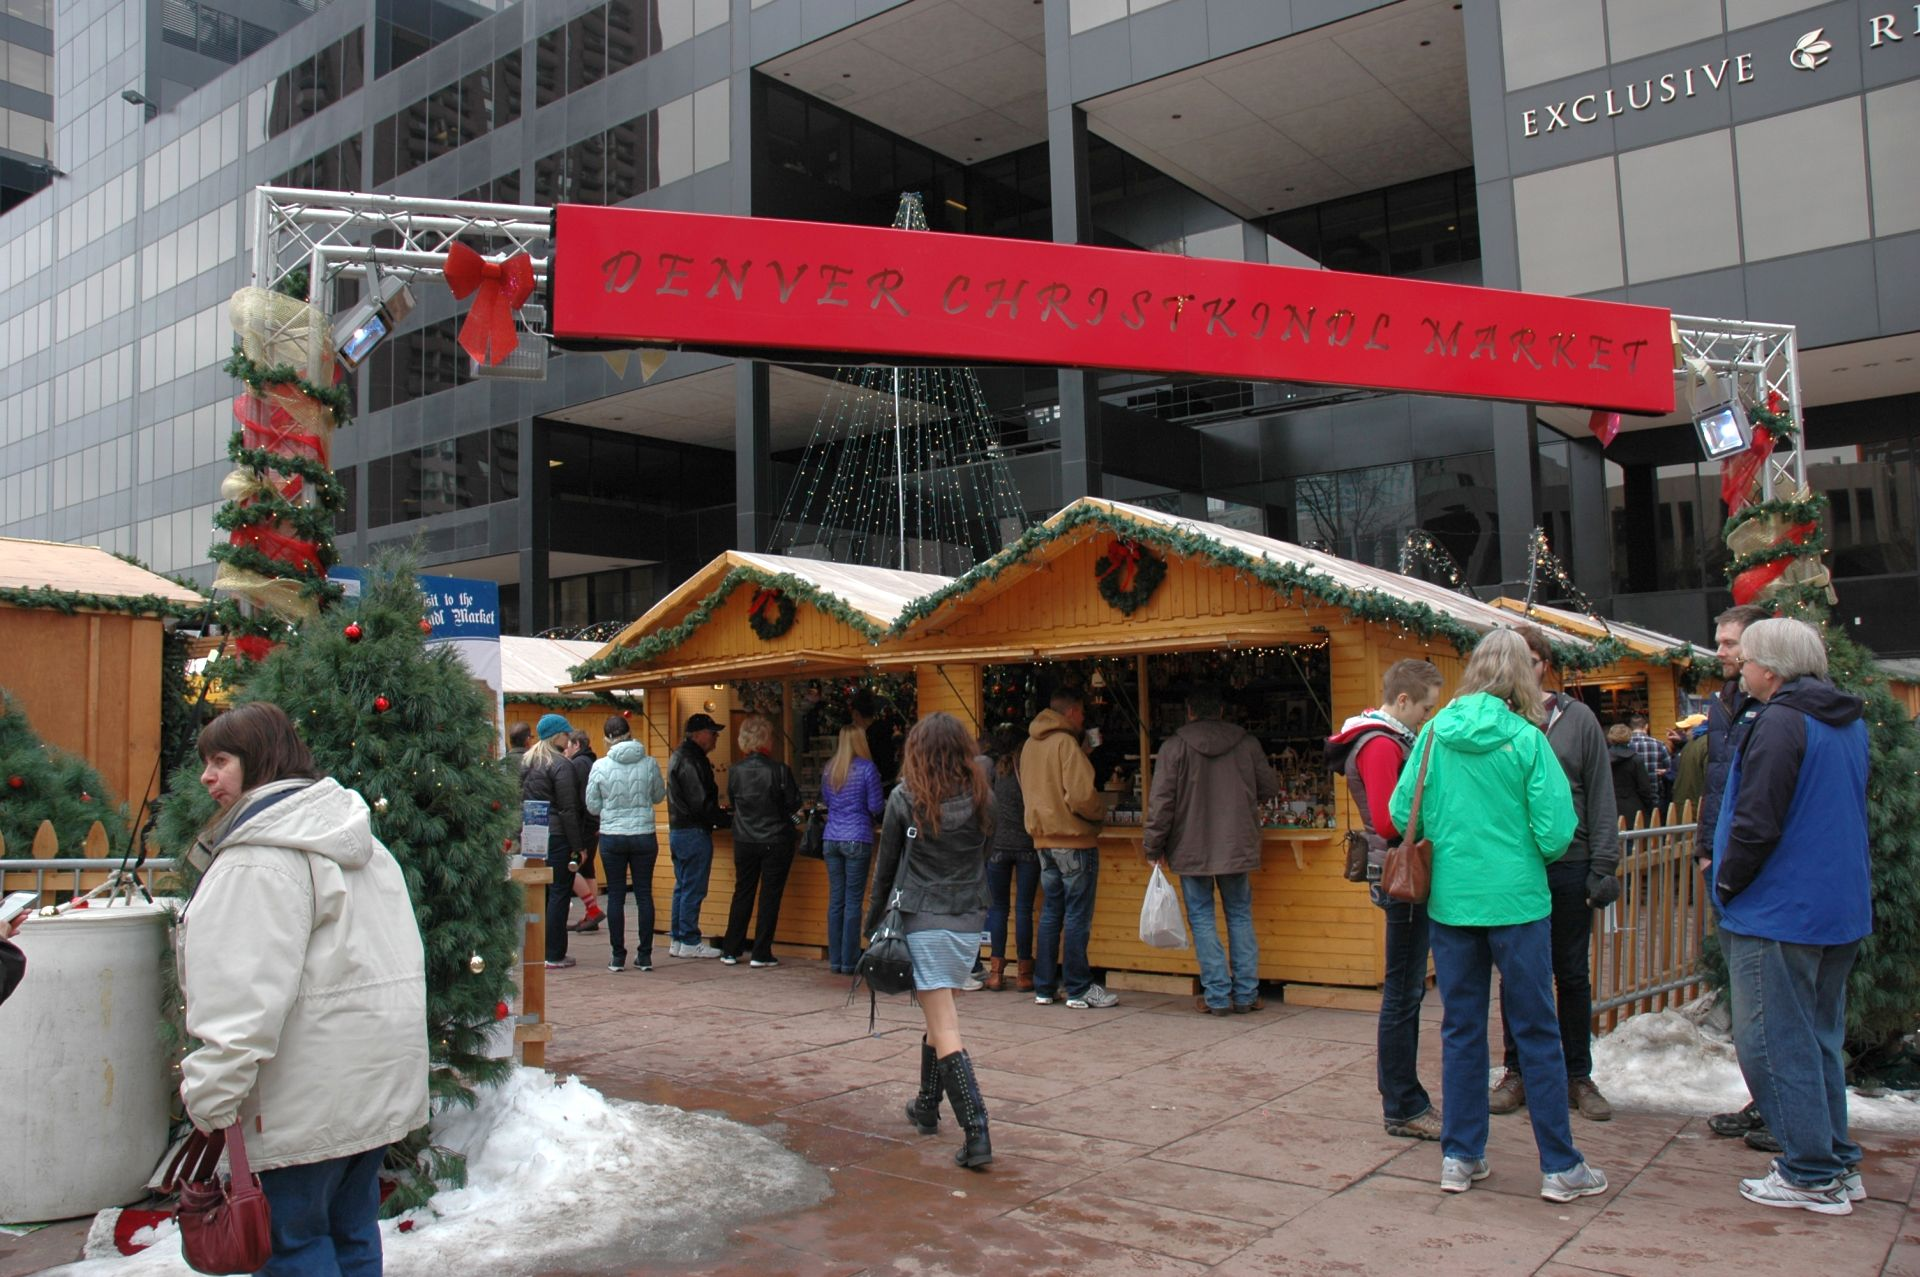 Dec 03,  · The Christkindl Market is a beautiful winter tradition that takes place in Germany annually. The festival hosts vendors selling traditional German food, drinks, and items to prepare for the.